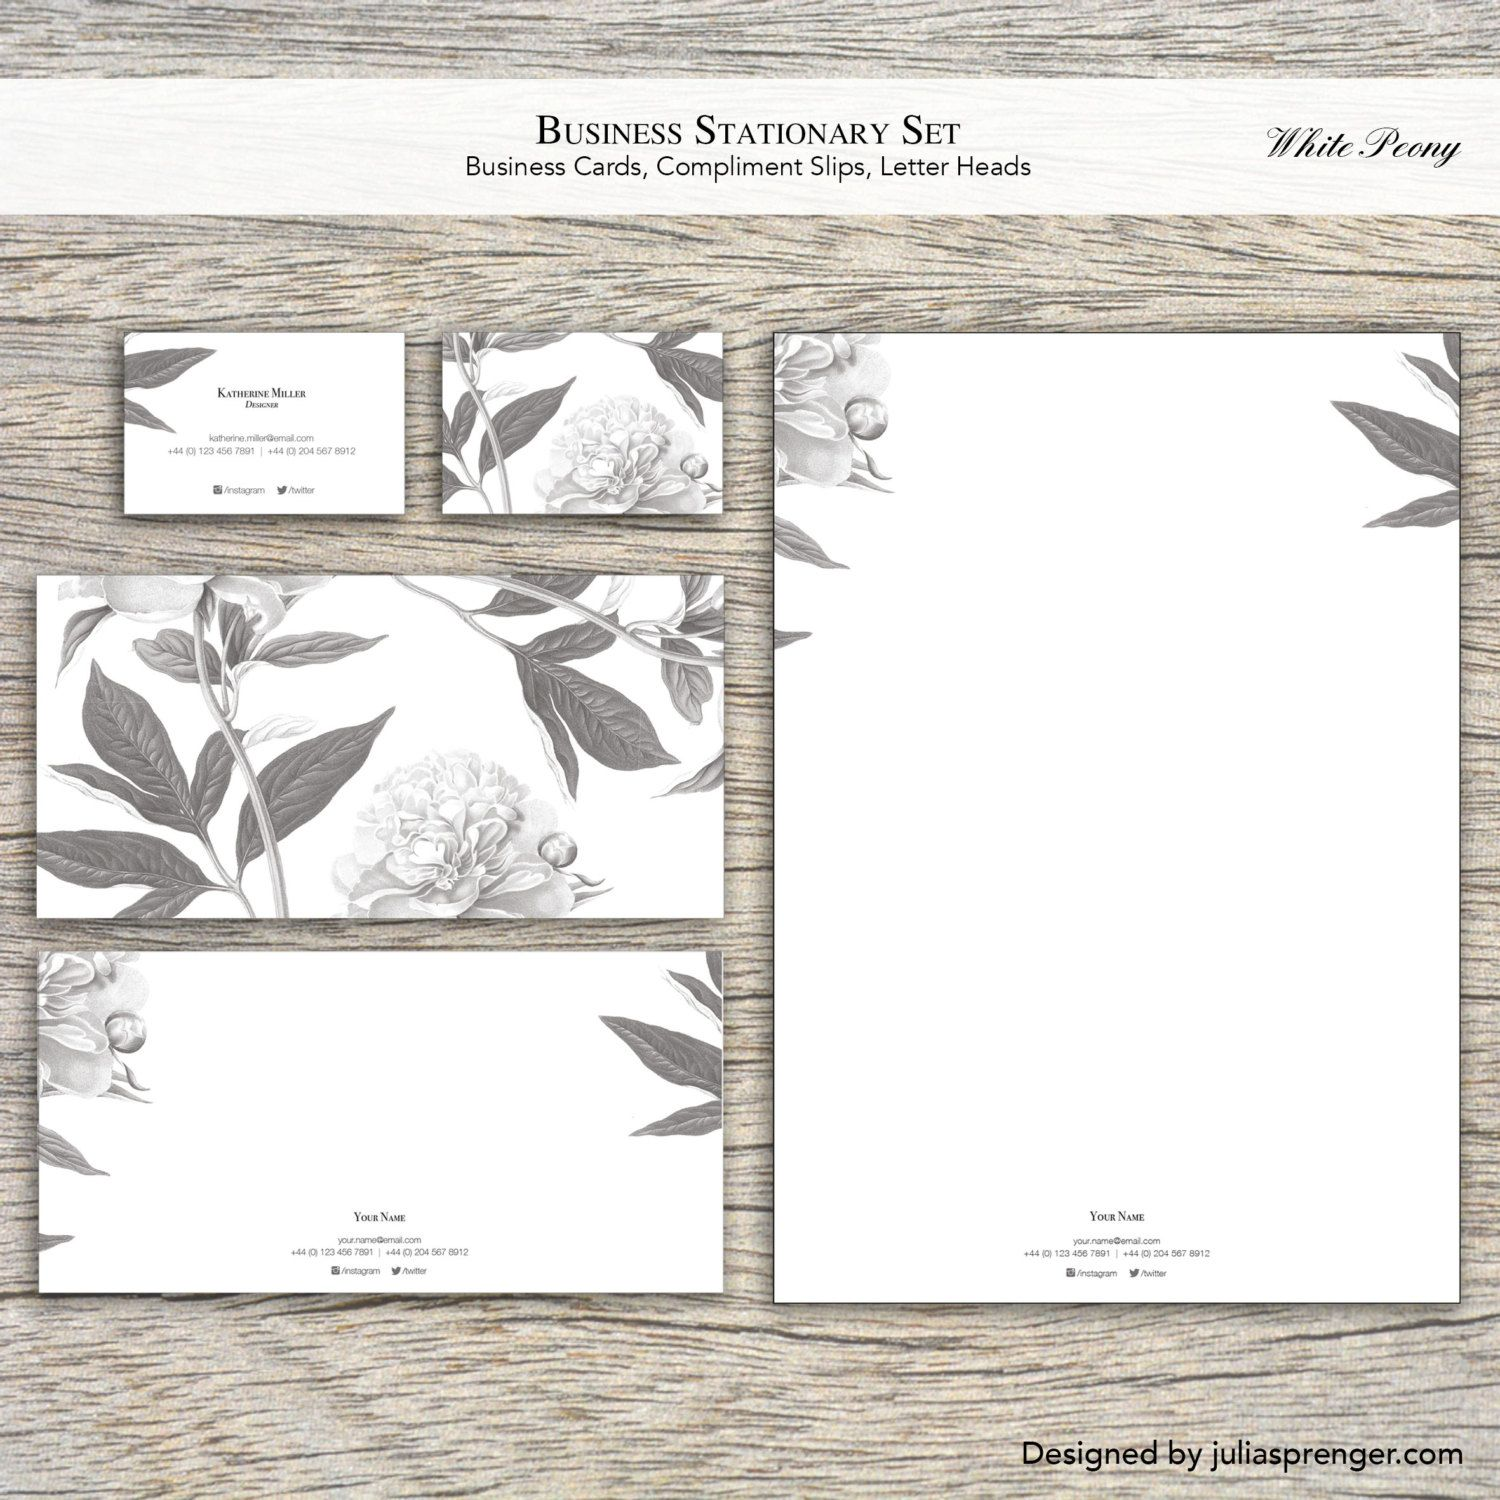 Stationary Set (100 Business Cards, 100 Letter Heads, 100 Compliment ...